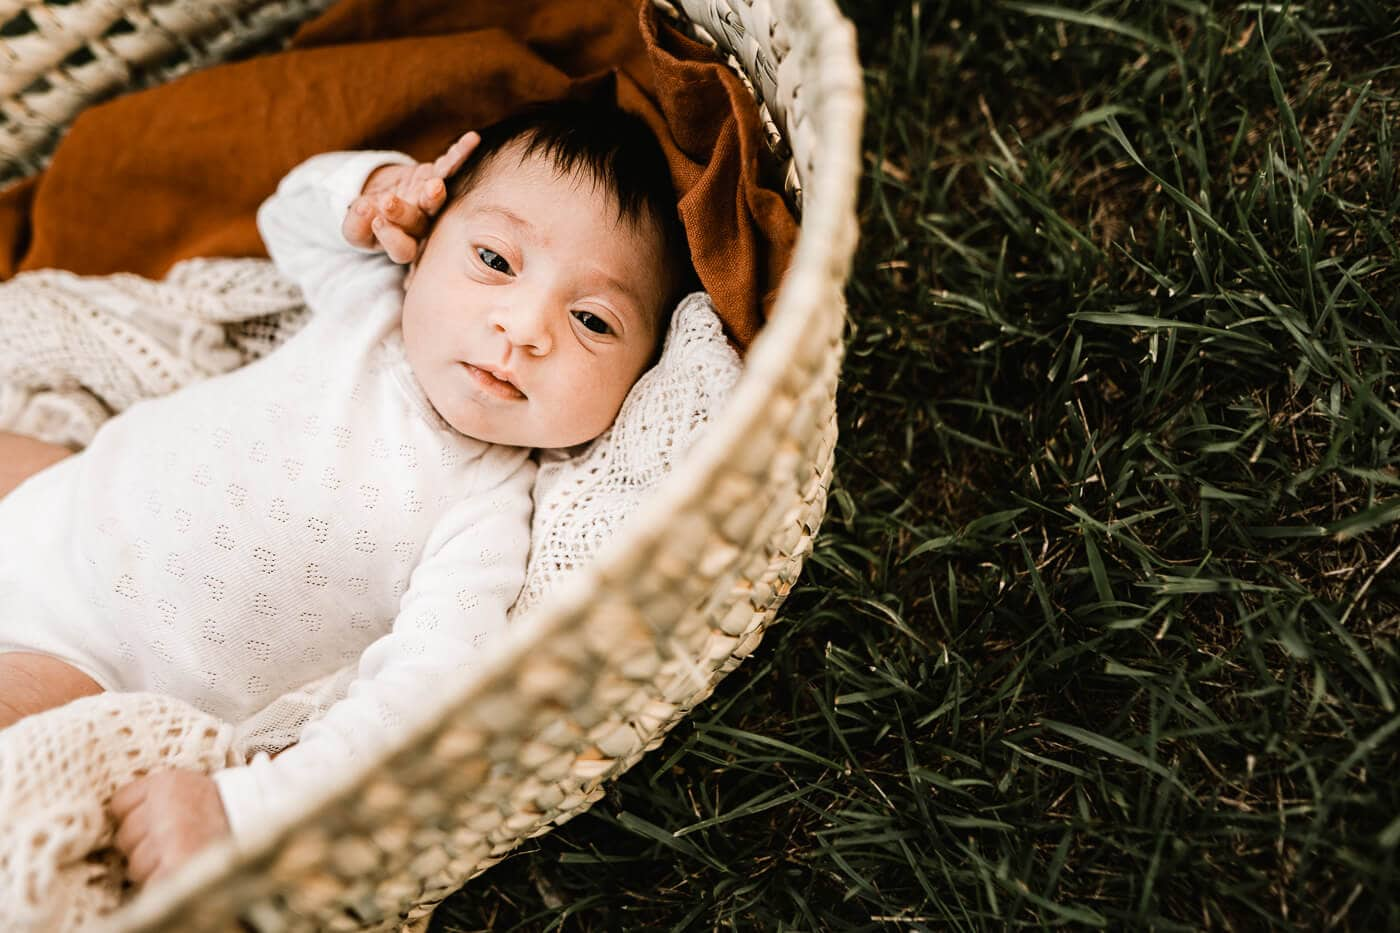 Baby girl in moses basket outside in the grass